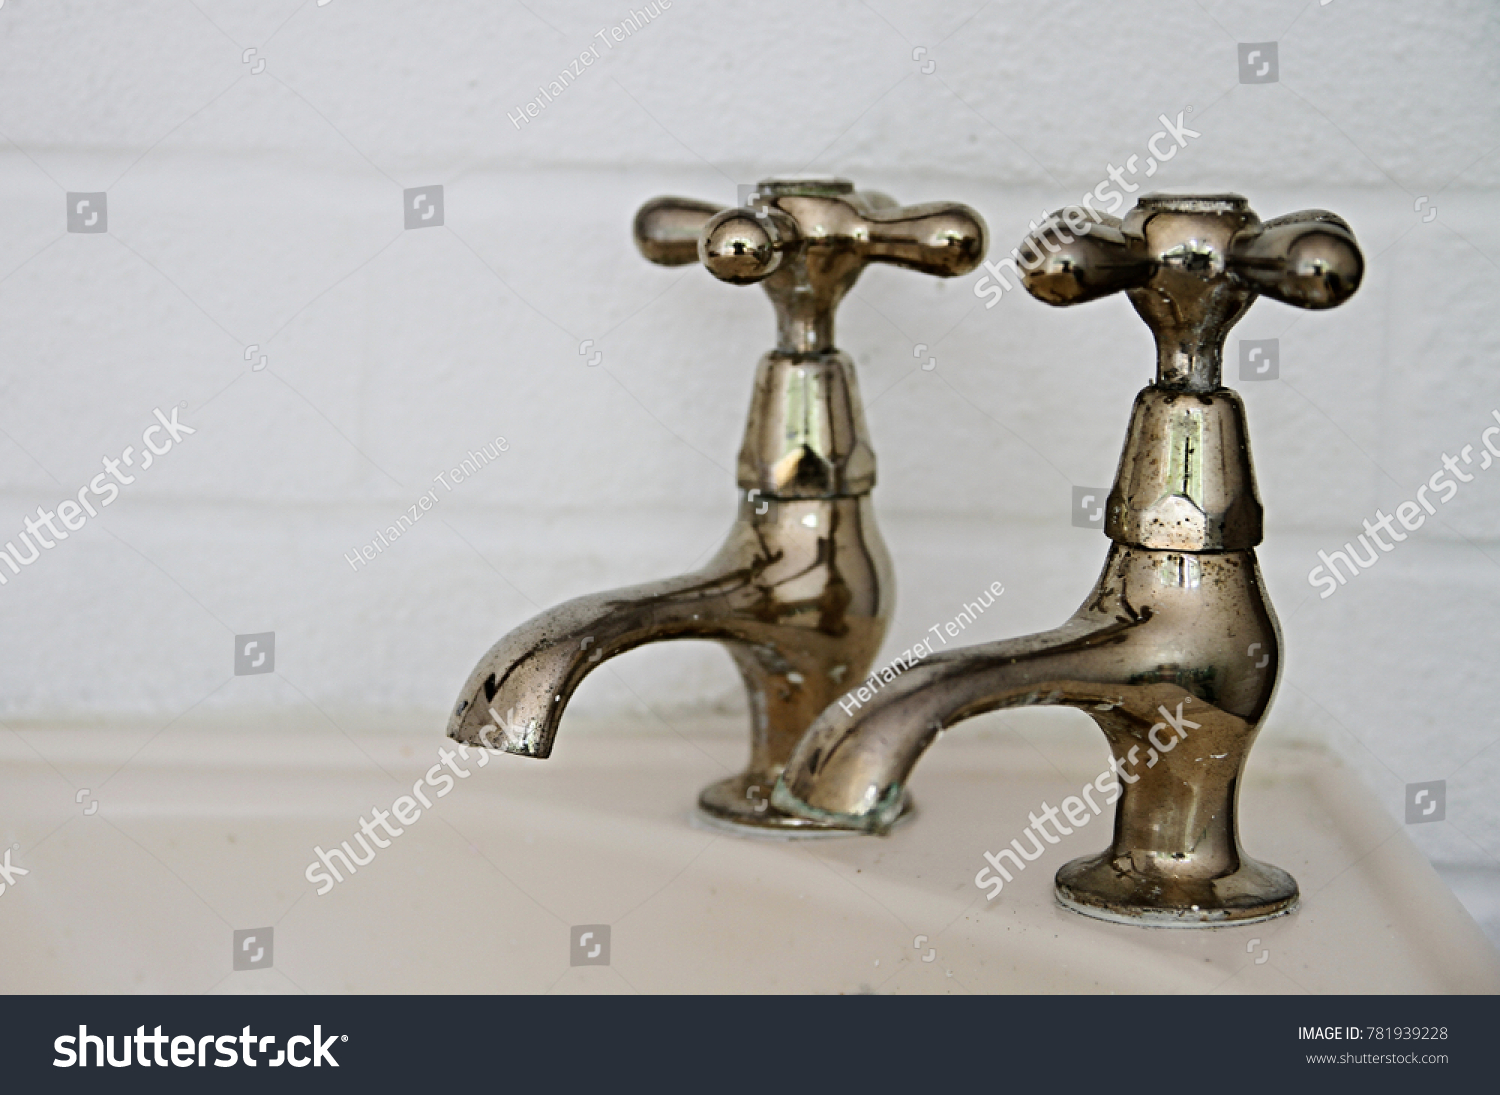 Two Old Taps On Bathroom Sink Stock Photo 781939228 - Shutterstock